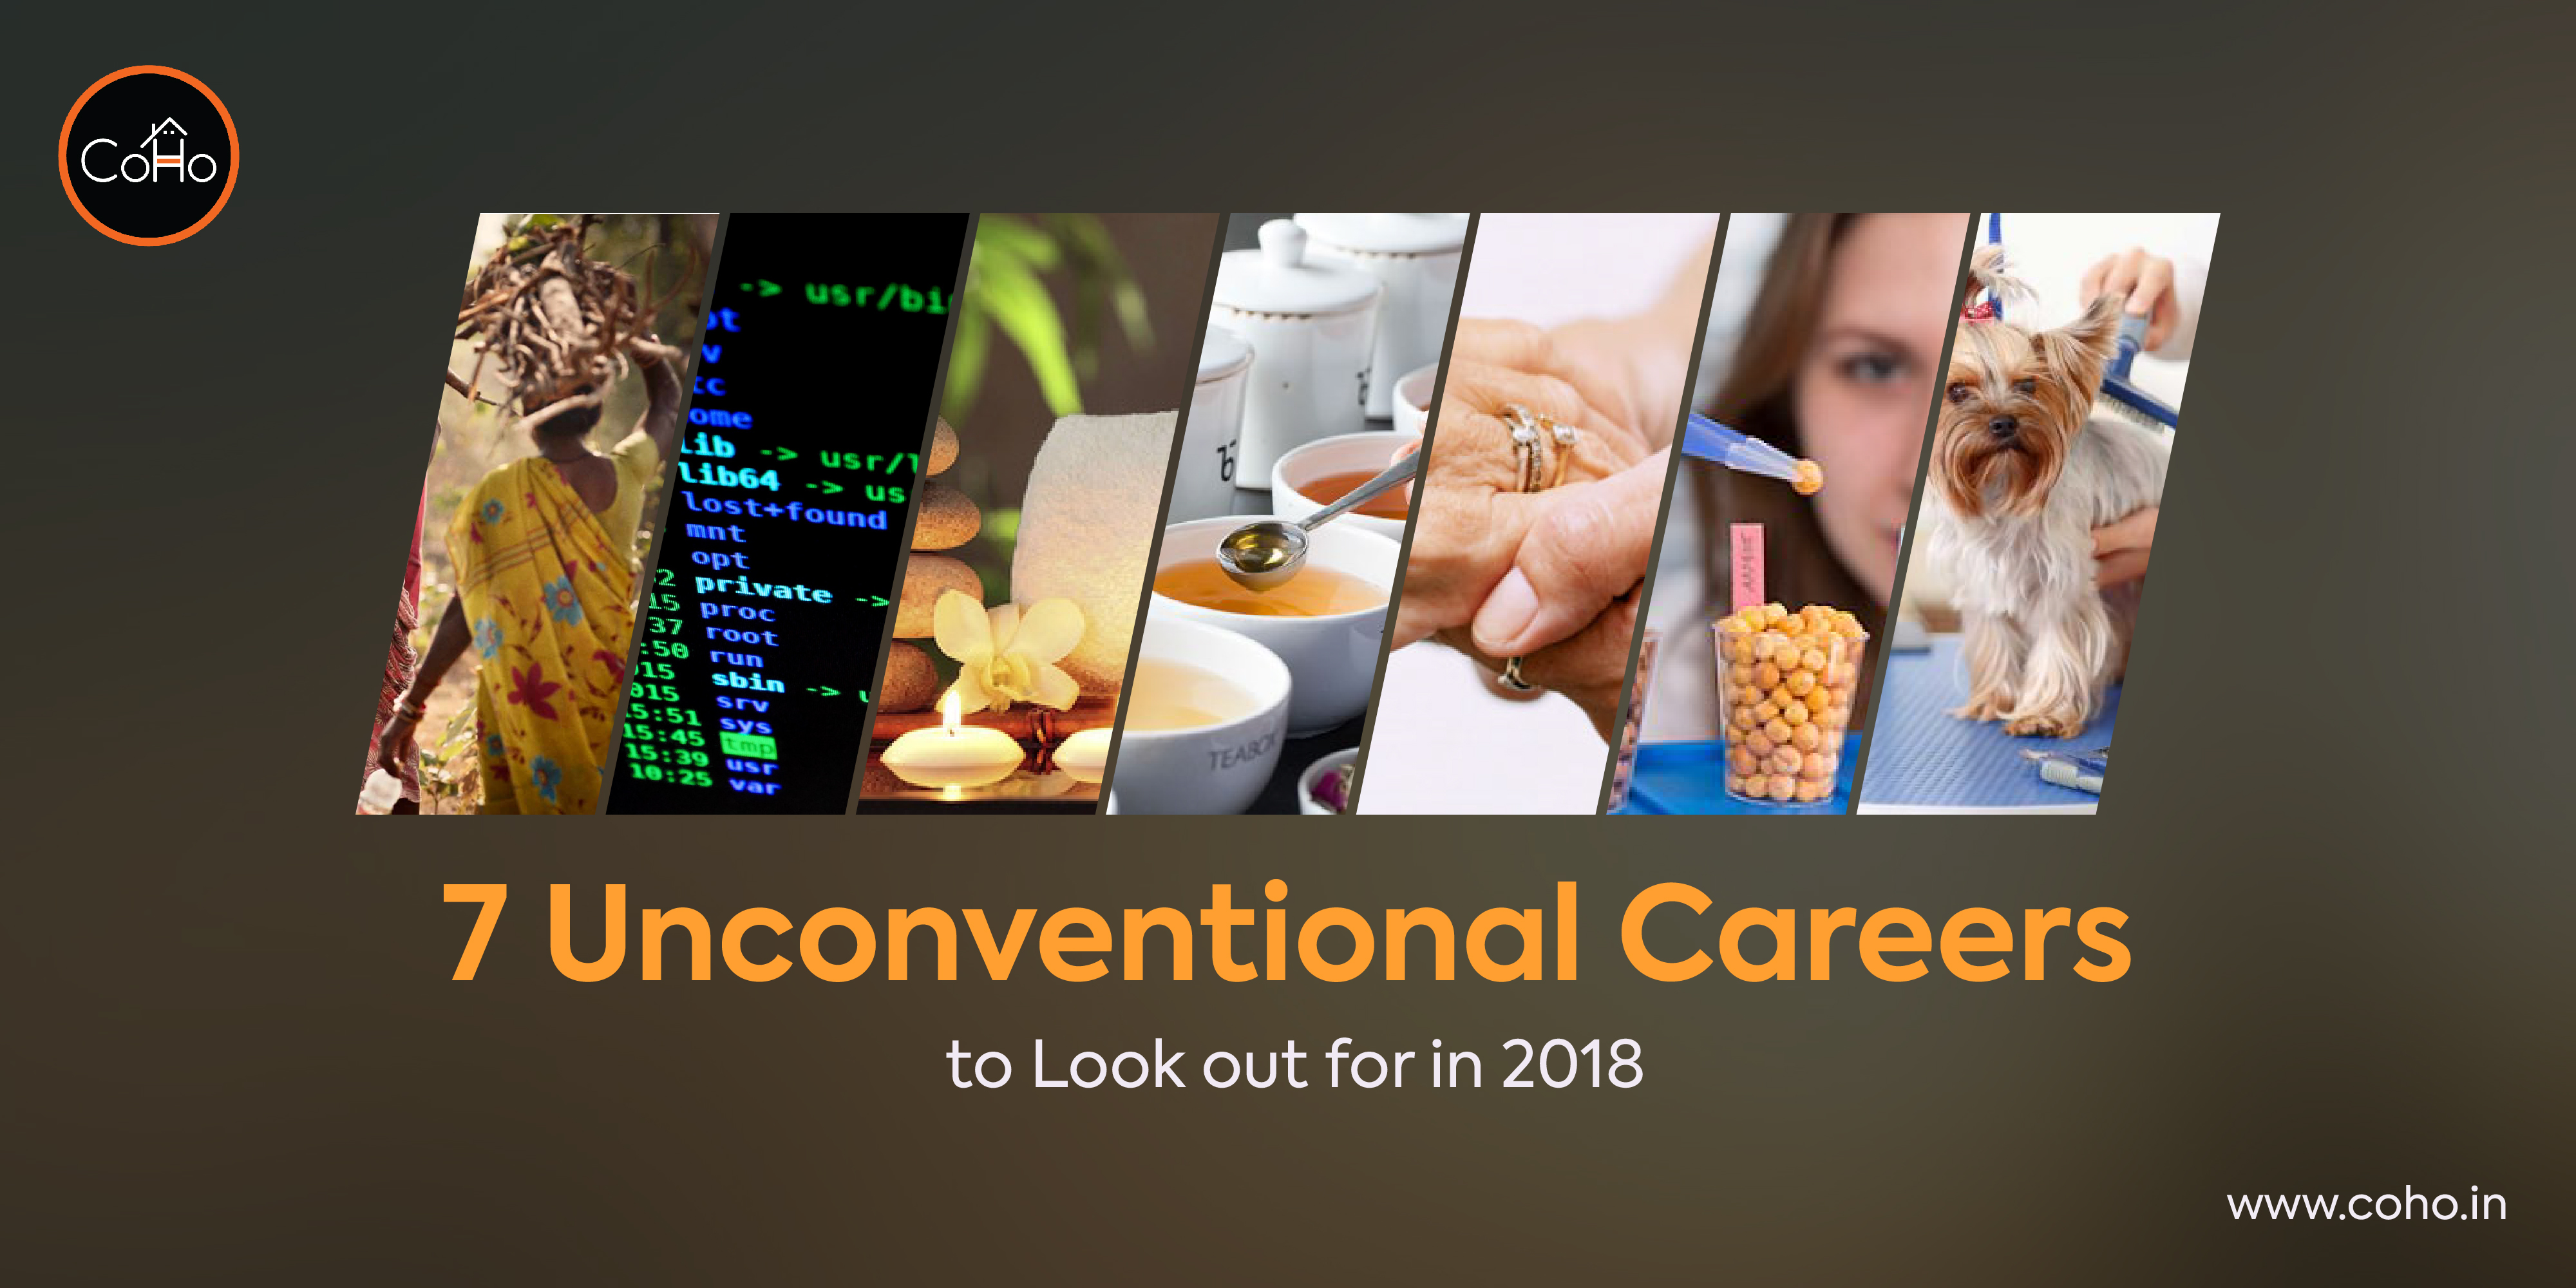 7 Unconventional Careers to Look out for in 2018